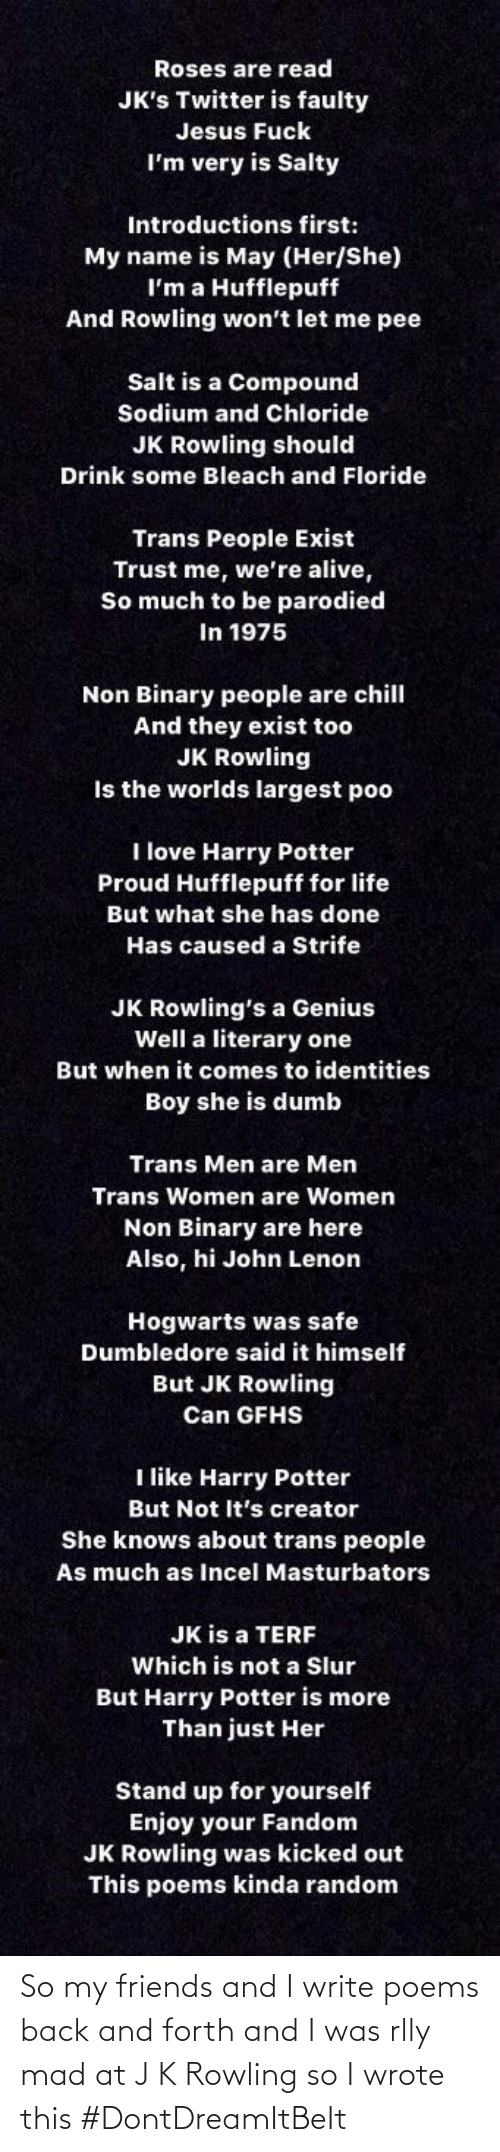 rowling: So my friends and I write poems back and forth and I was rlly mad at J K Rowling so I wrote this #DontDreamItBeIt